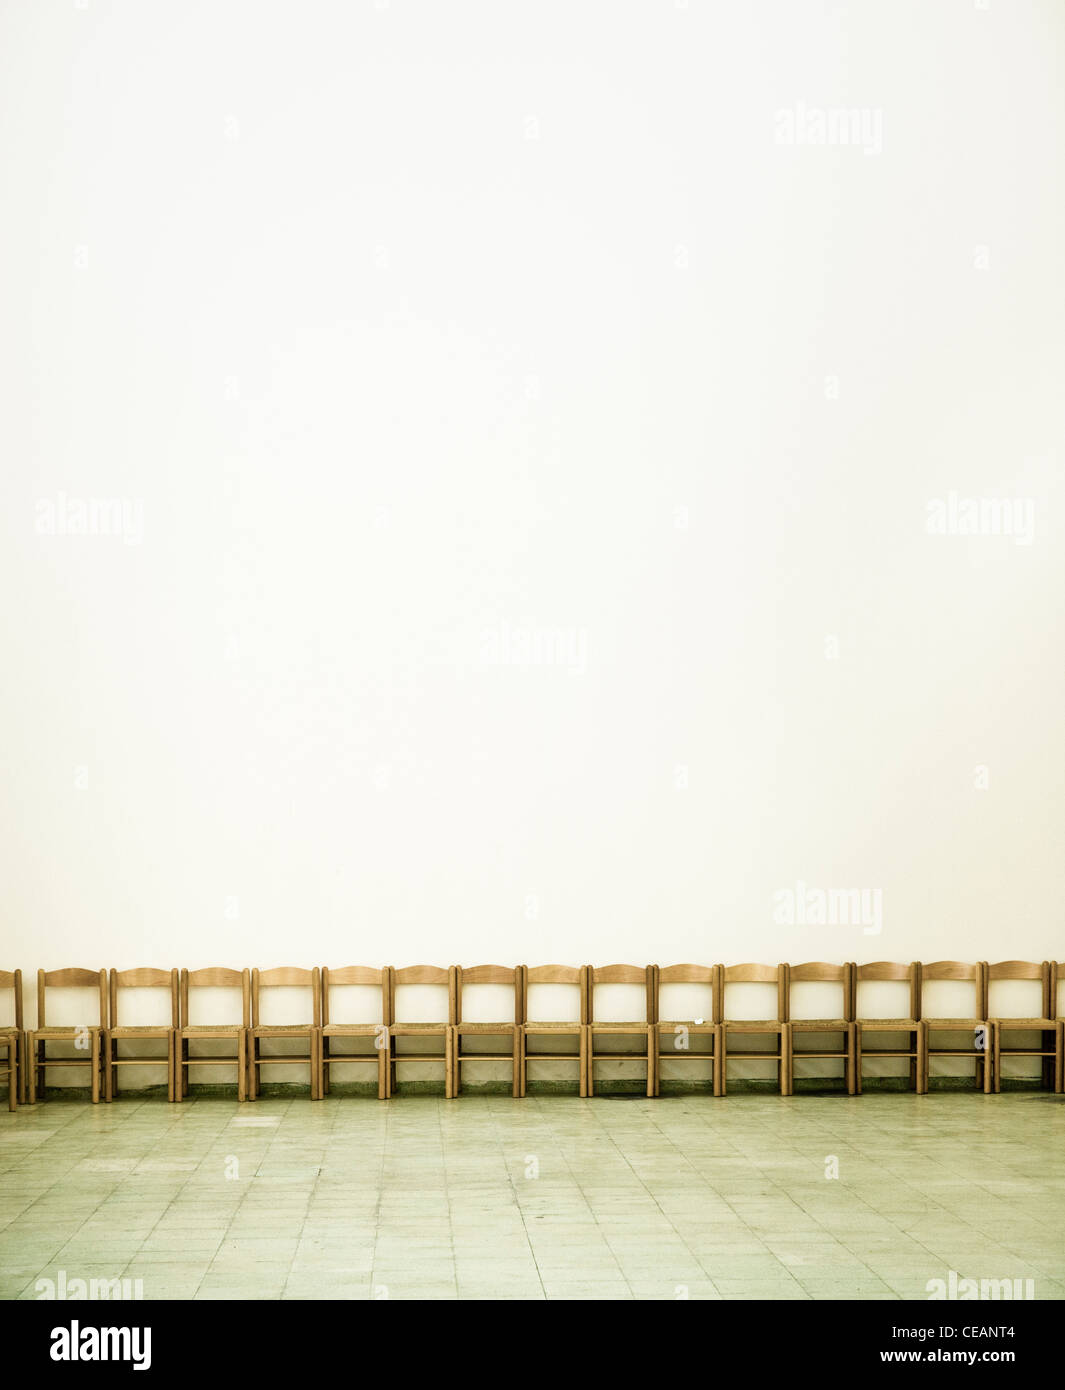 Empty chairs in a large room - Stock Image